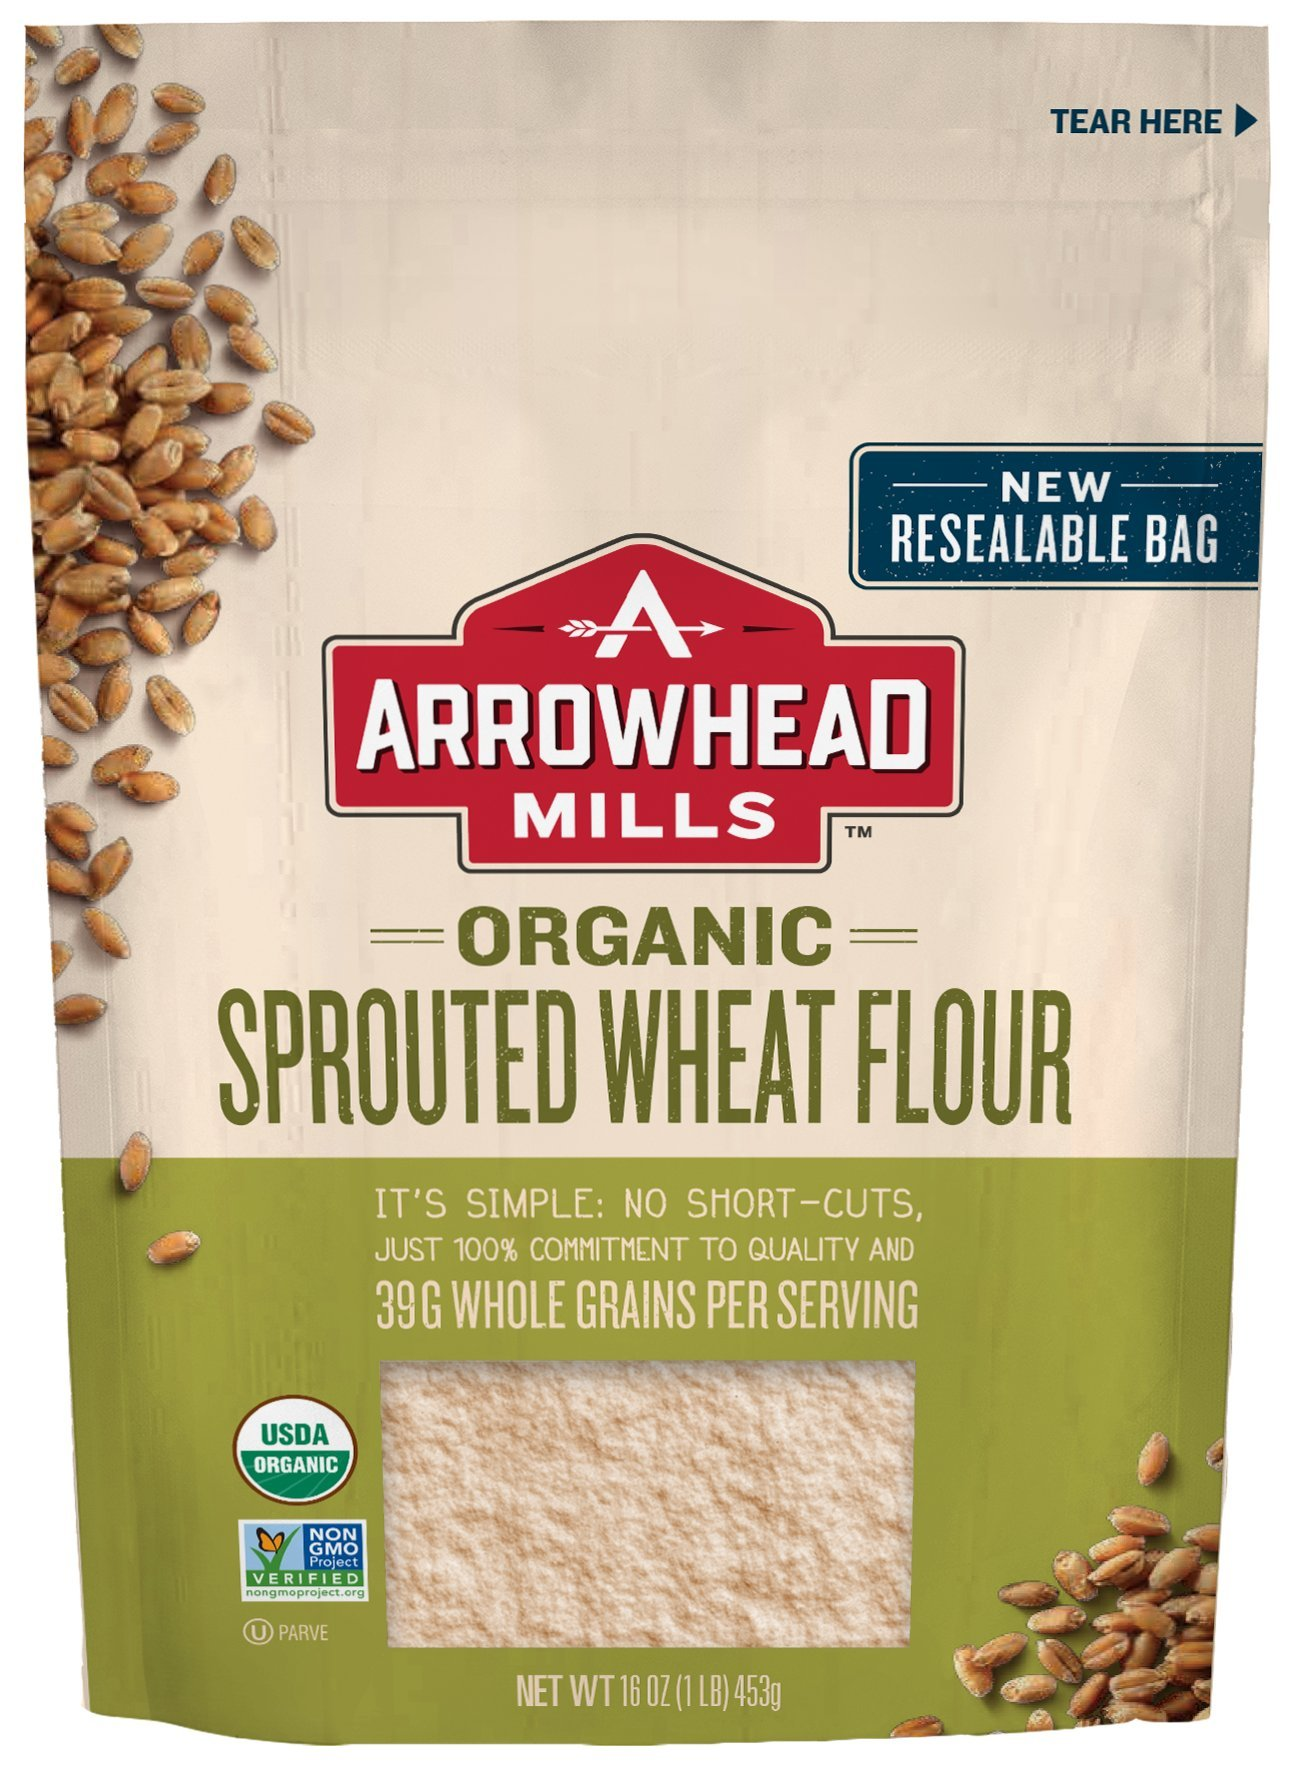 Arrowhead Mills Organic Sprouted Wheat Flour, 16 oz.